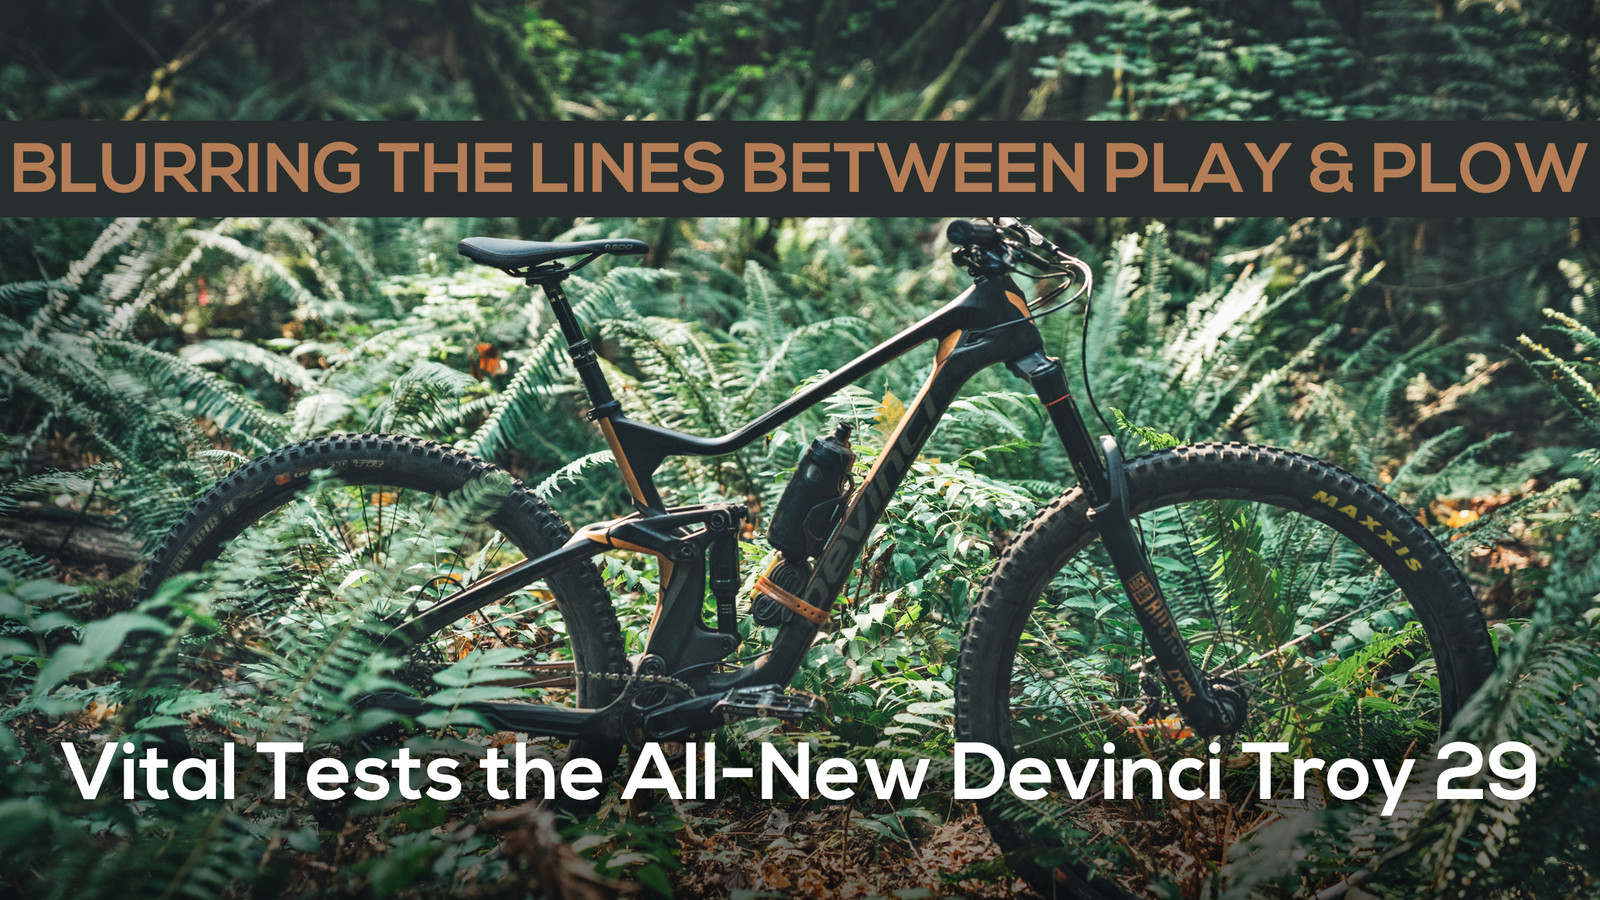 Tested: 2019 Devinci Troy 29 GX LTD